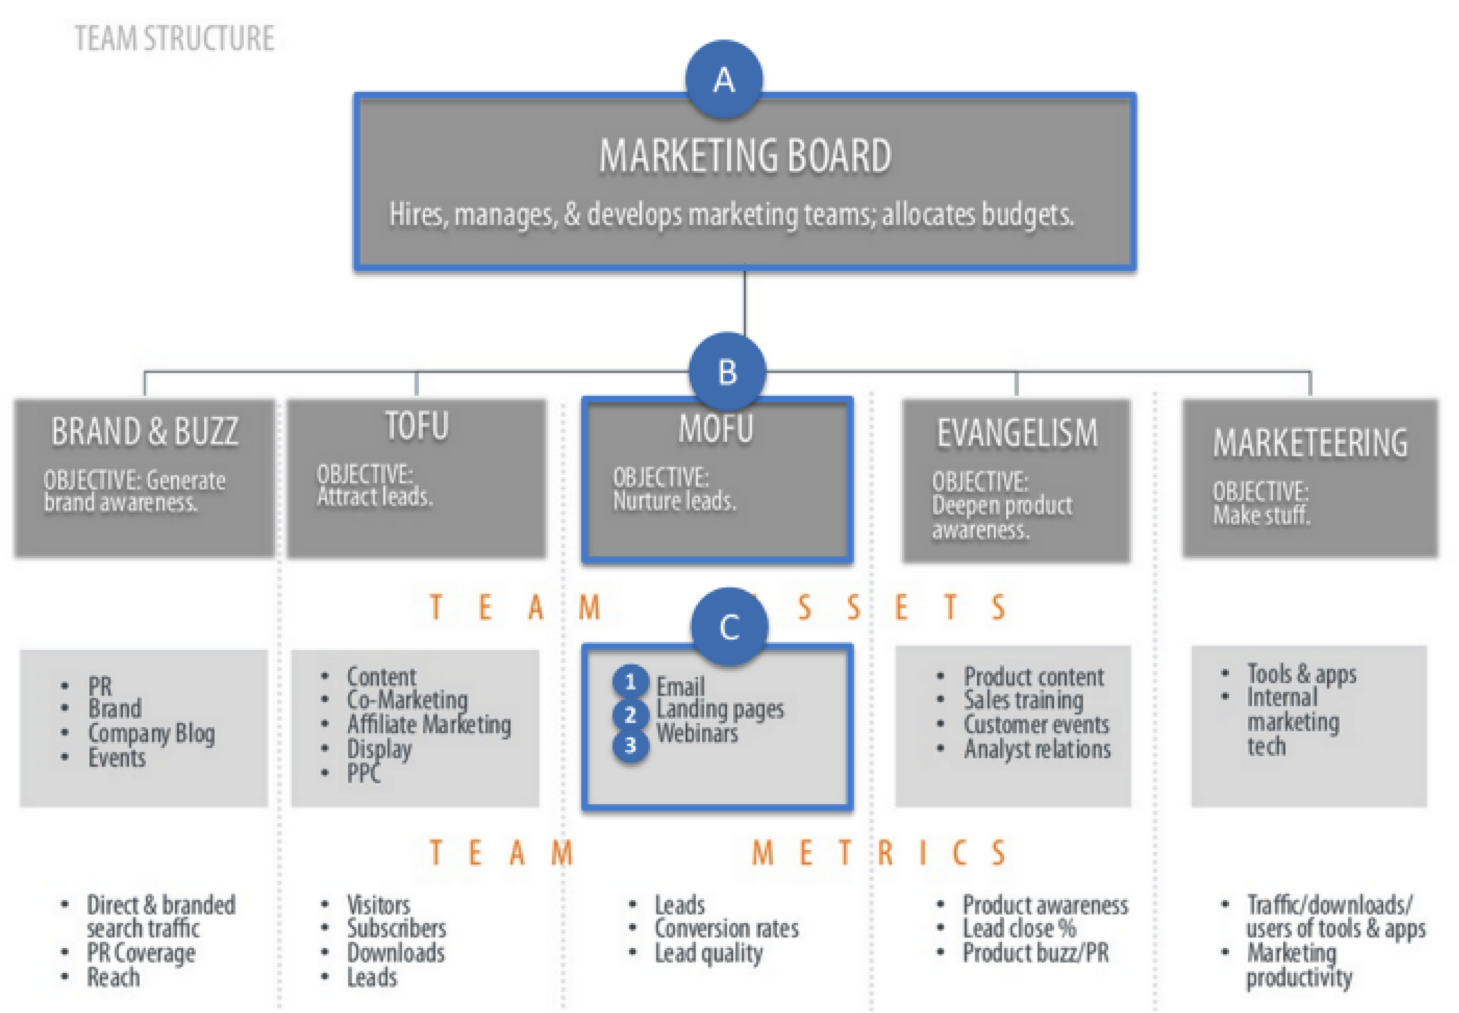 A Winning Agile Marketing Team Template Boardview Hubspot Inbound Marketing Team Structure A Winning Agile Marketing Team Template